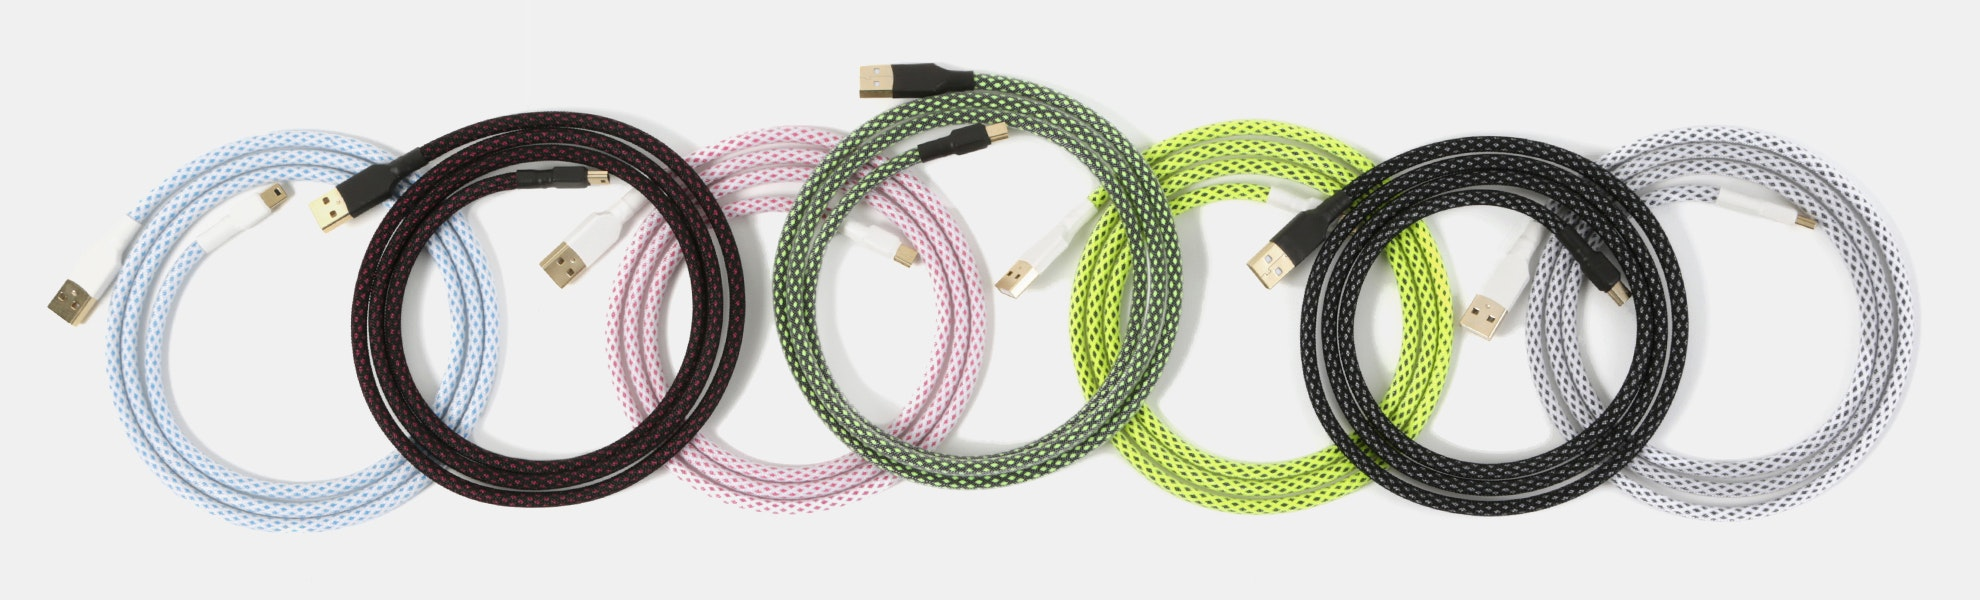 Diamond-Patterned Techflex USB Cables